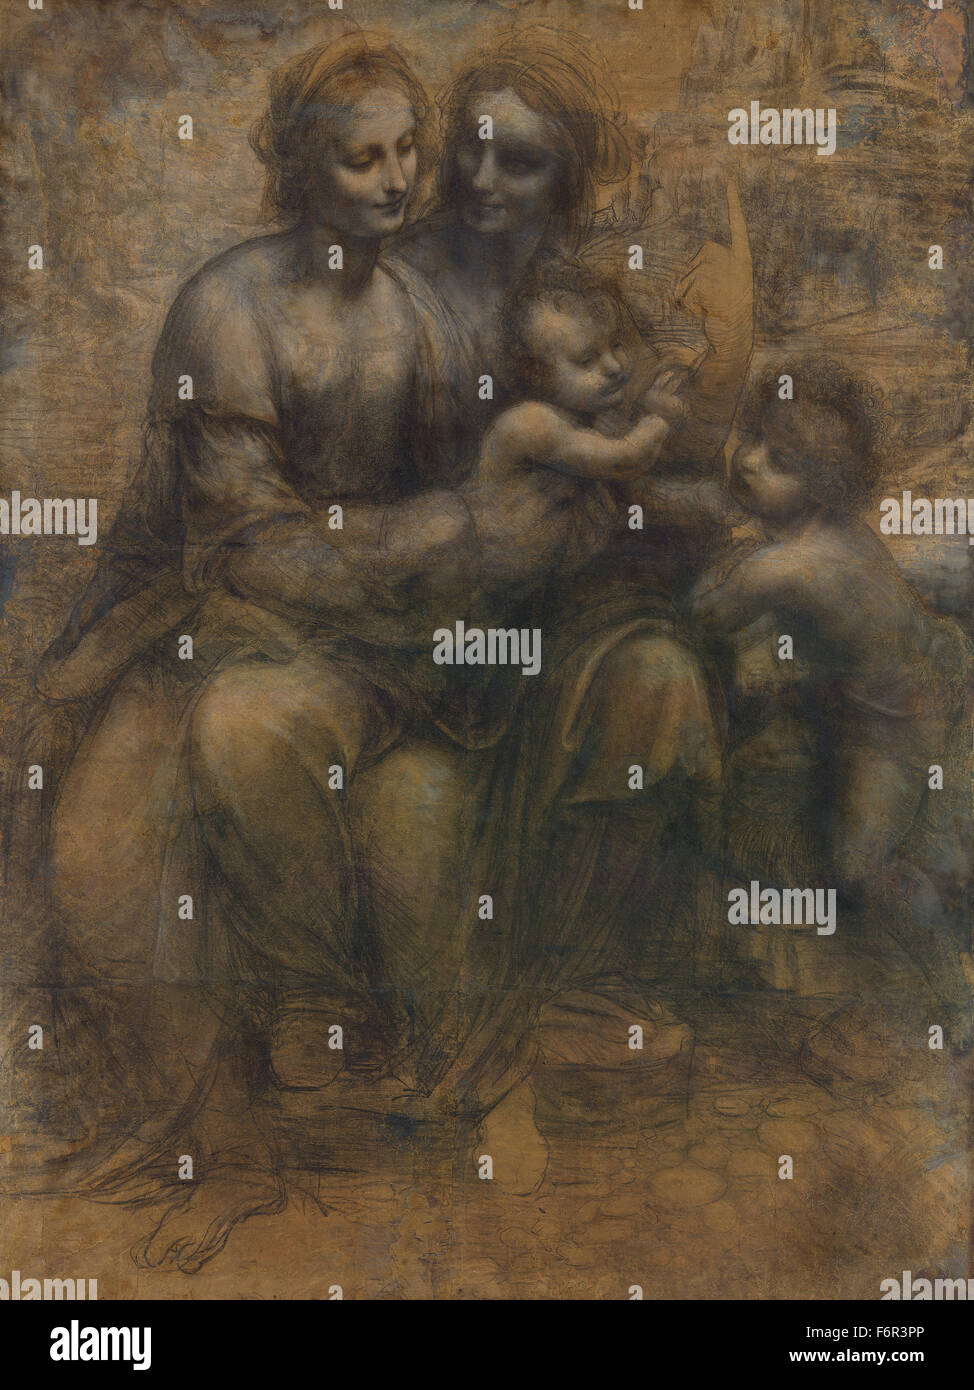 Leonardo da Vinci - The Burlington House Cartoon Photo Stock